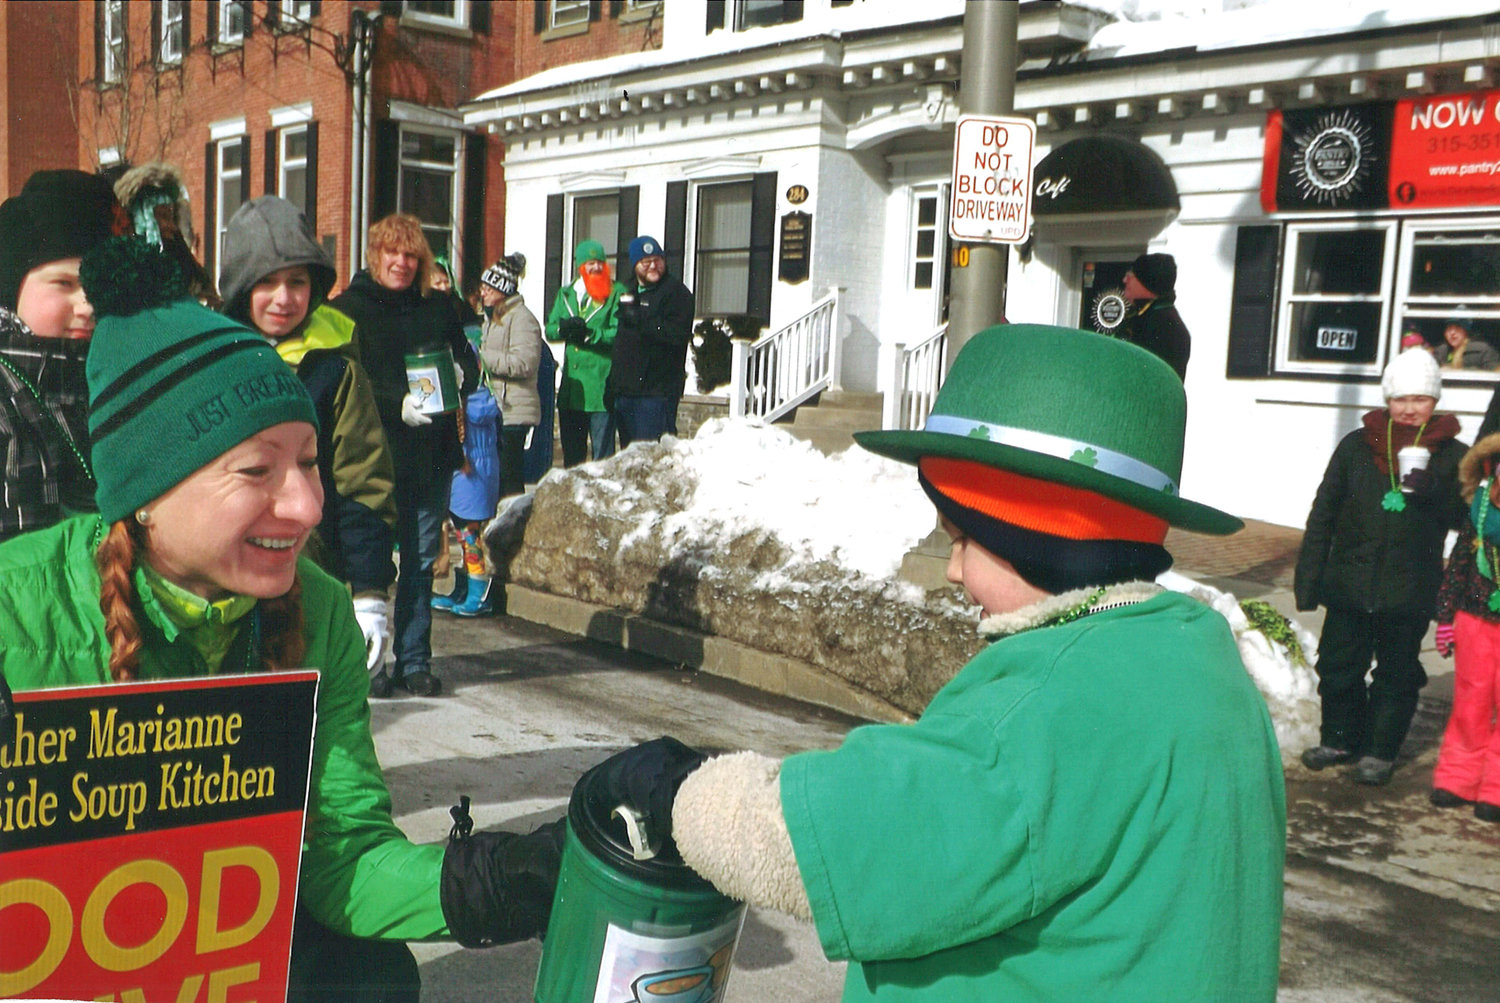 COLLECTION  — Volunteers collect donations for the Mother Marianne West Side Kitchen during last year's St. Patrick's Day parade in Utica.